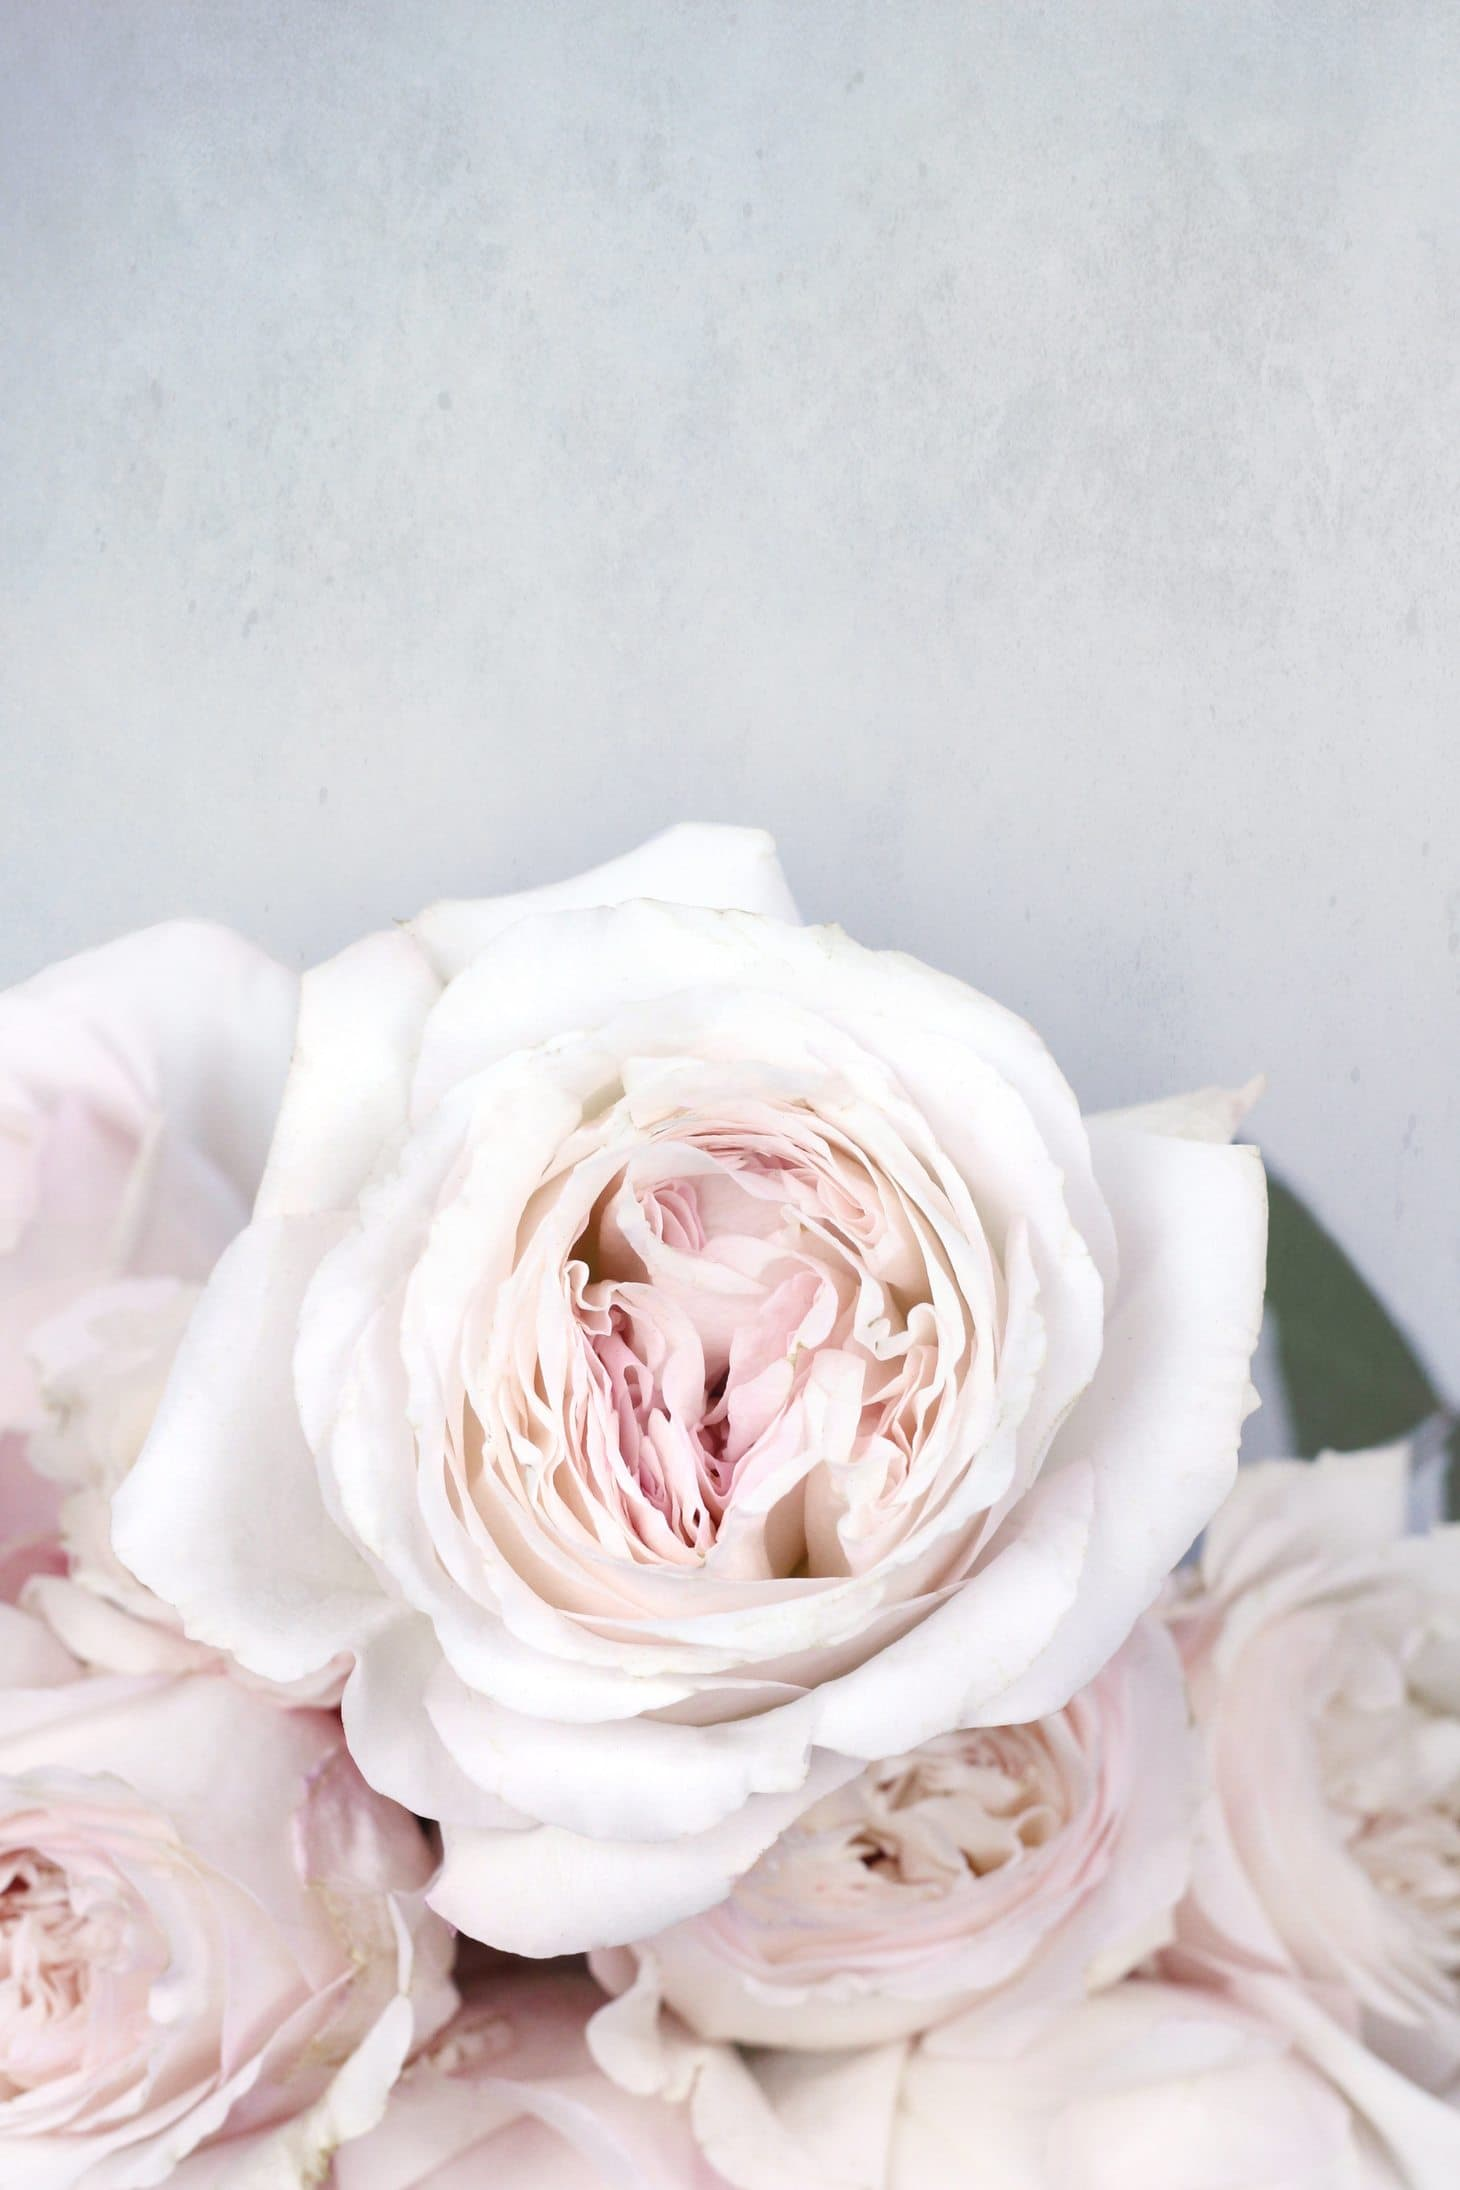 What do roses really smell of, rose smell, not all roses smell the same, rose perfume, Kiera rose, David Austin roses, wedding roses, vintage looking rose images